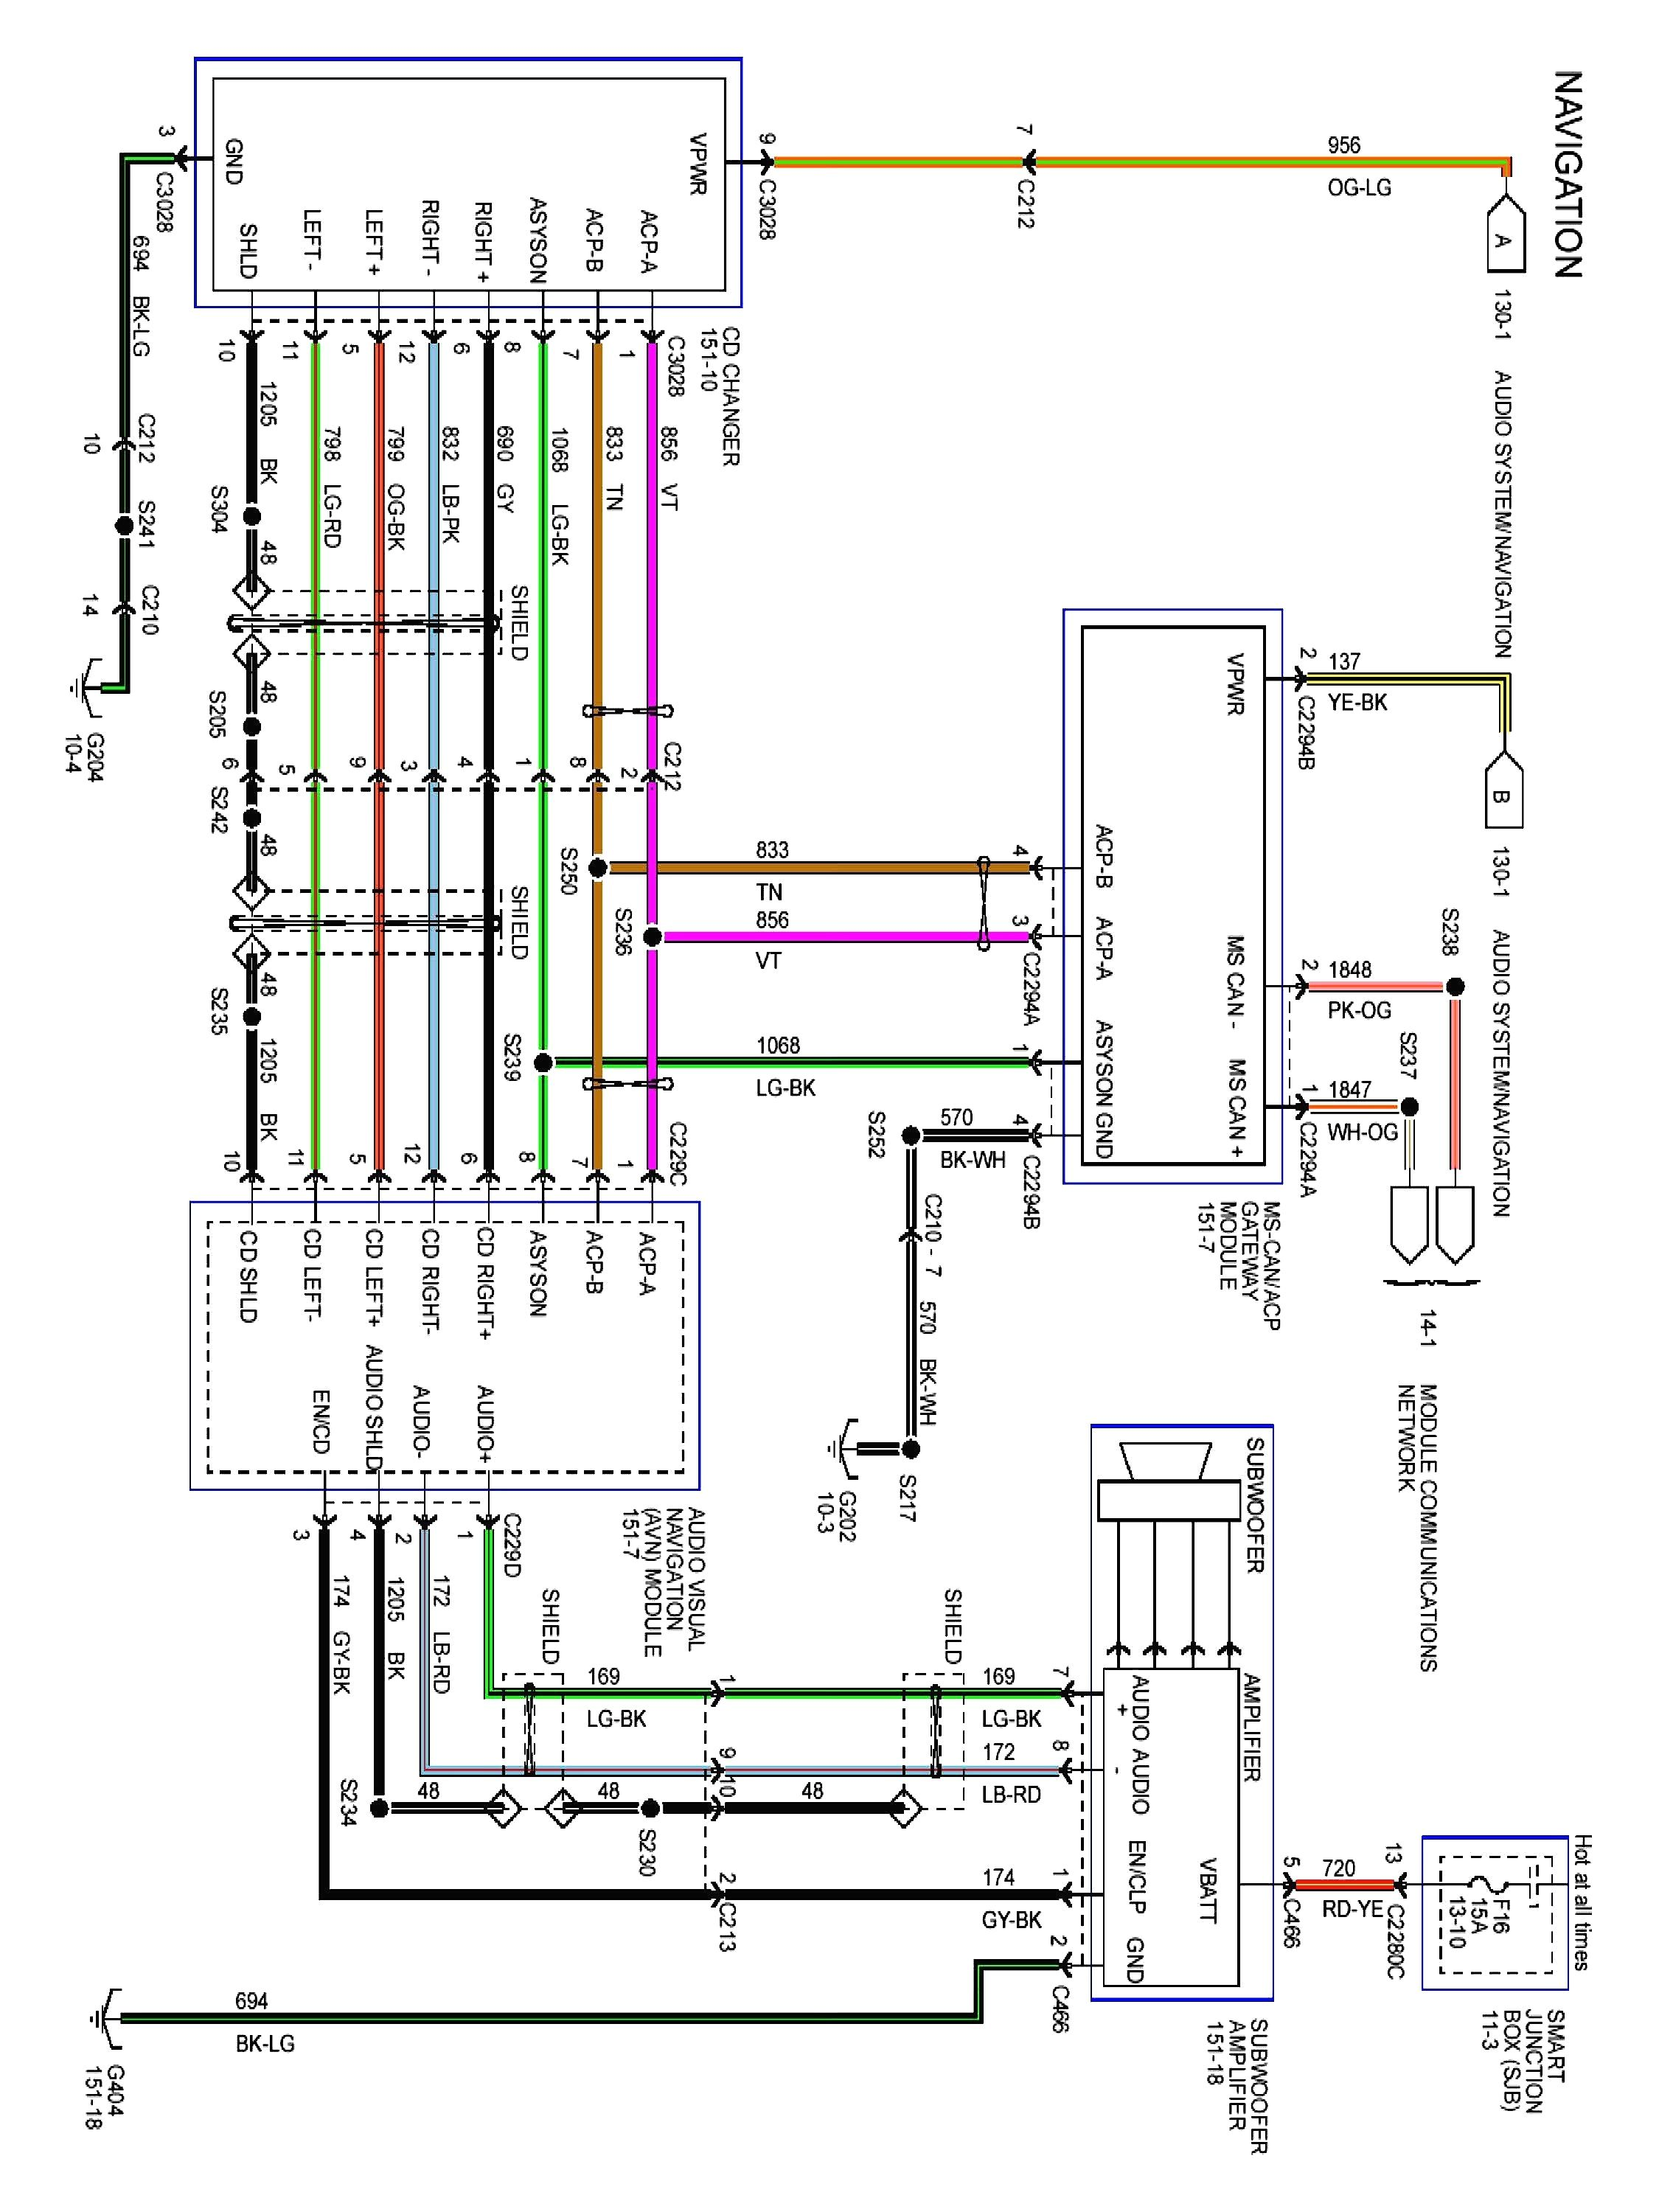 ford freestar wiring harness - wiring diagram export glow-bitter -  glow-bitter.congressosifo2018.it  congressosifo2018.it